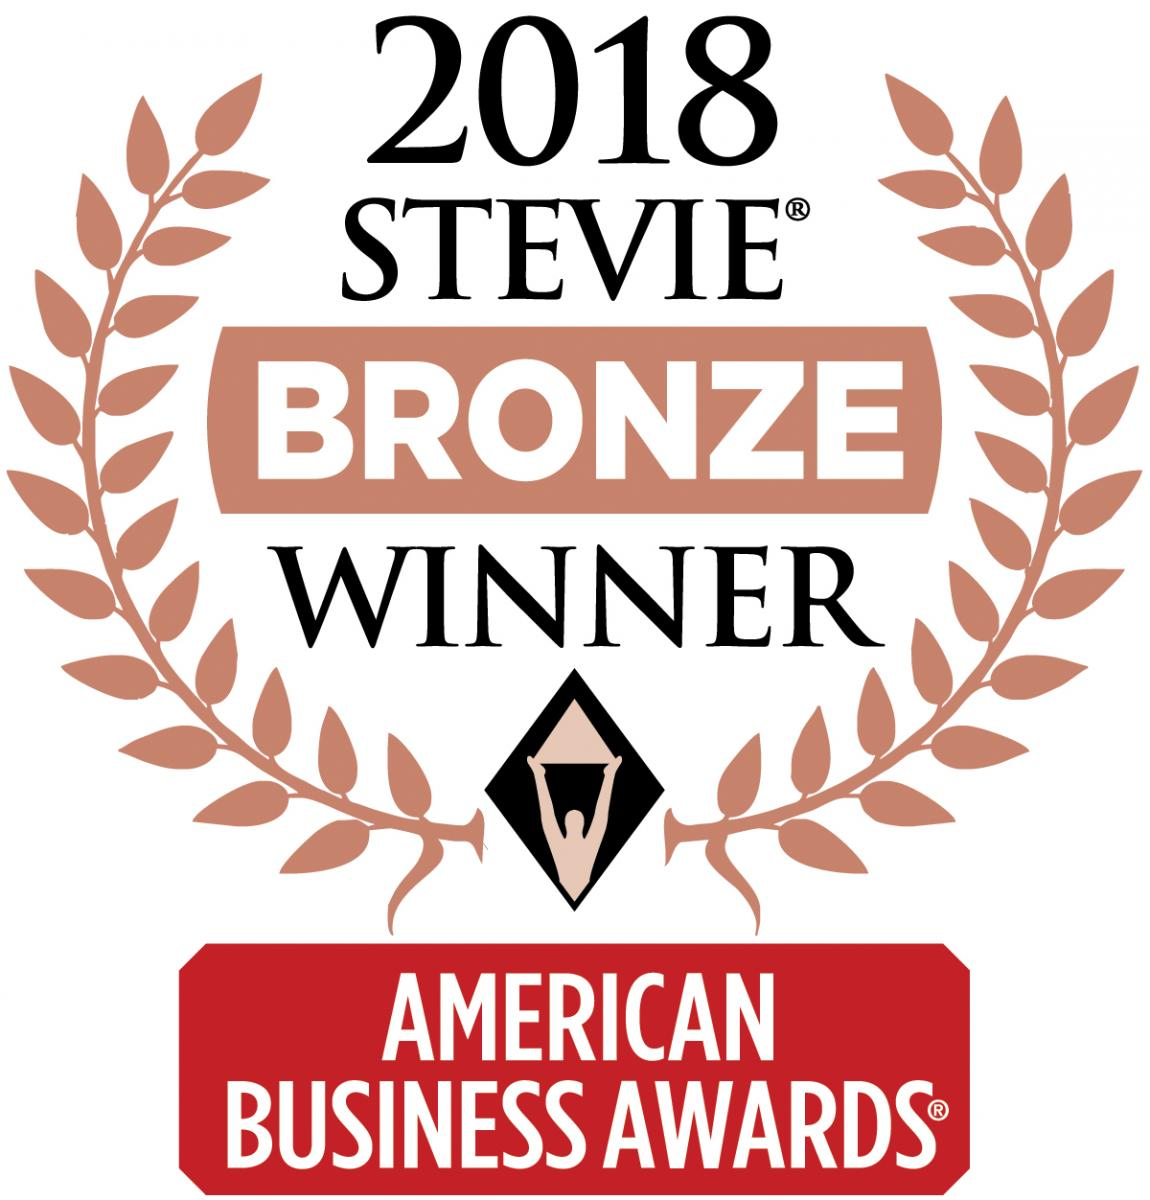 American Business Awards Stevie Bronze Winner